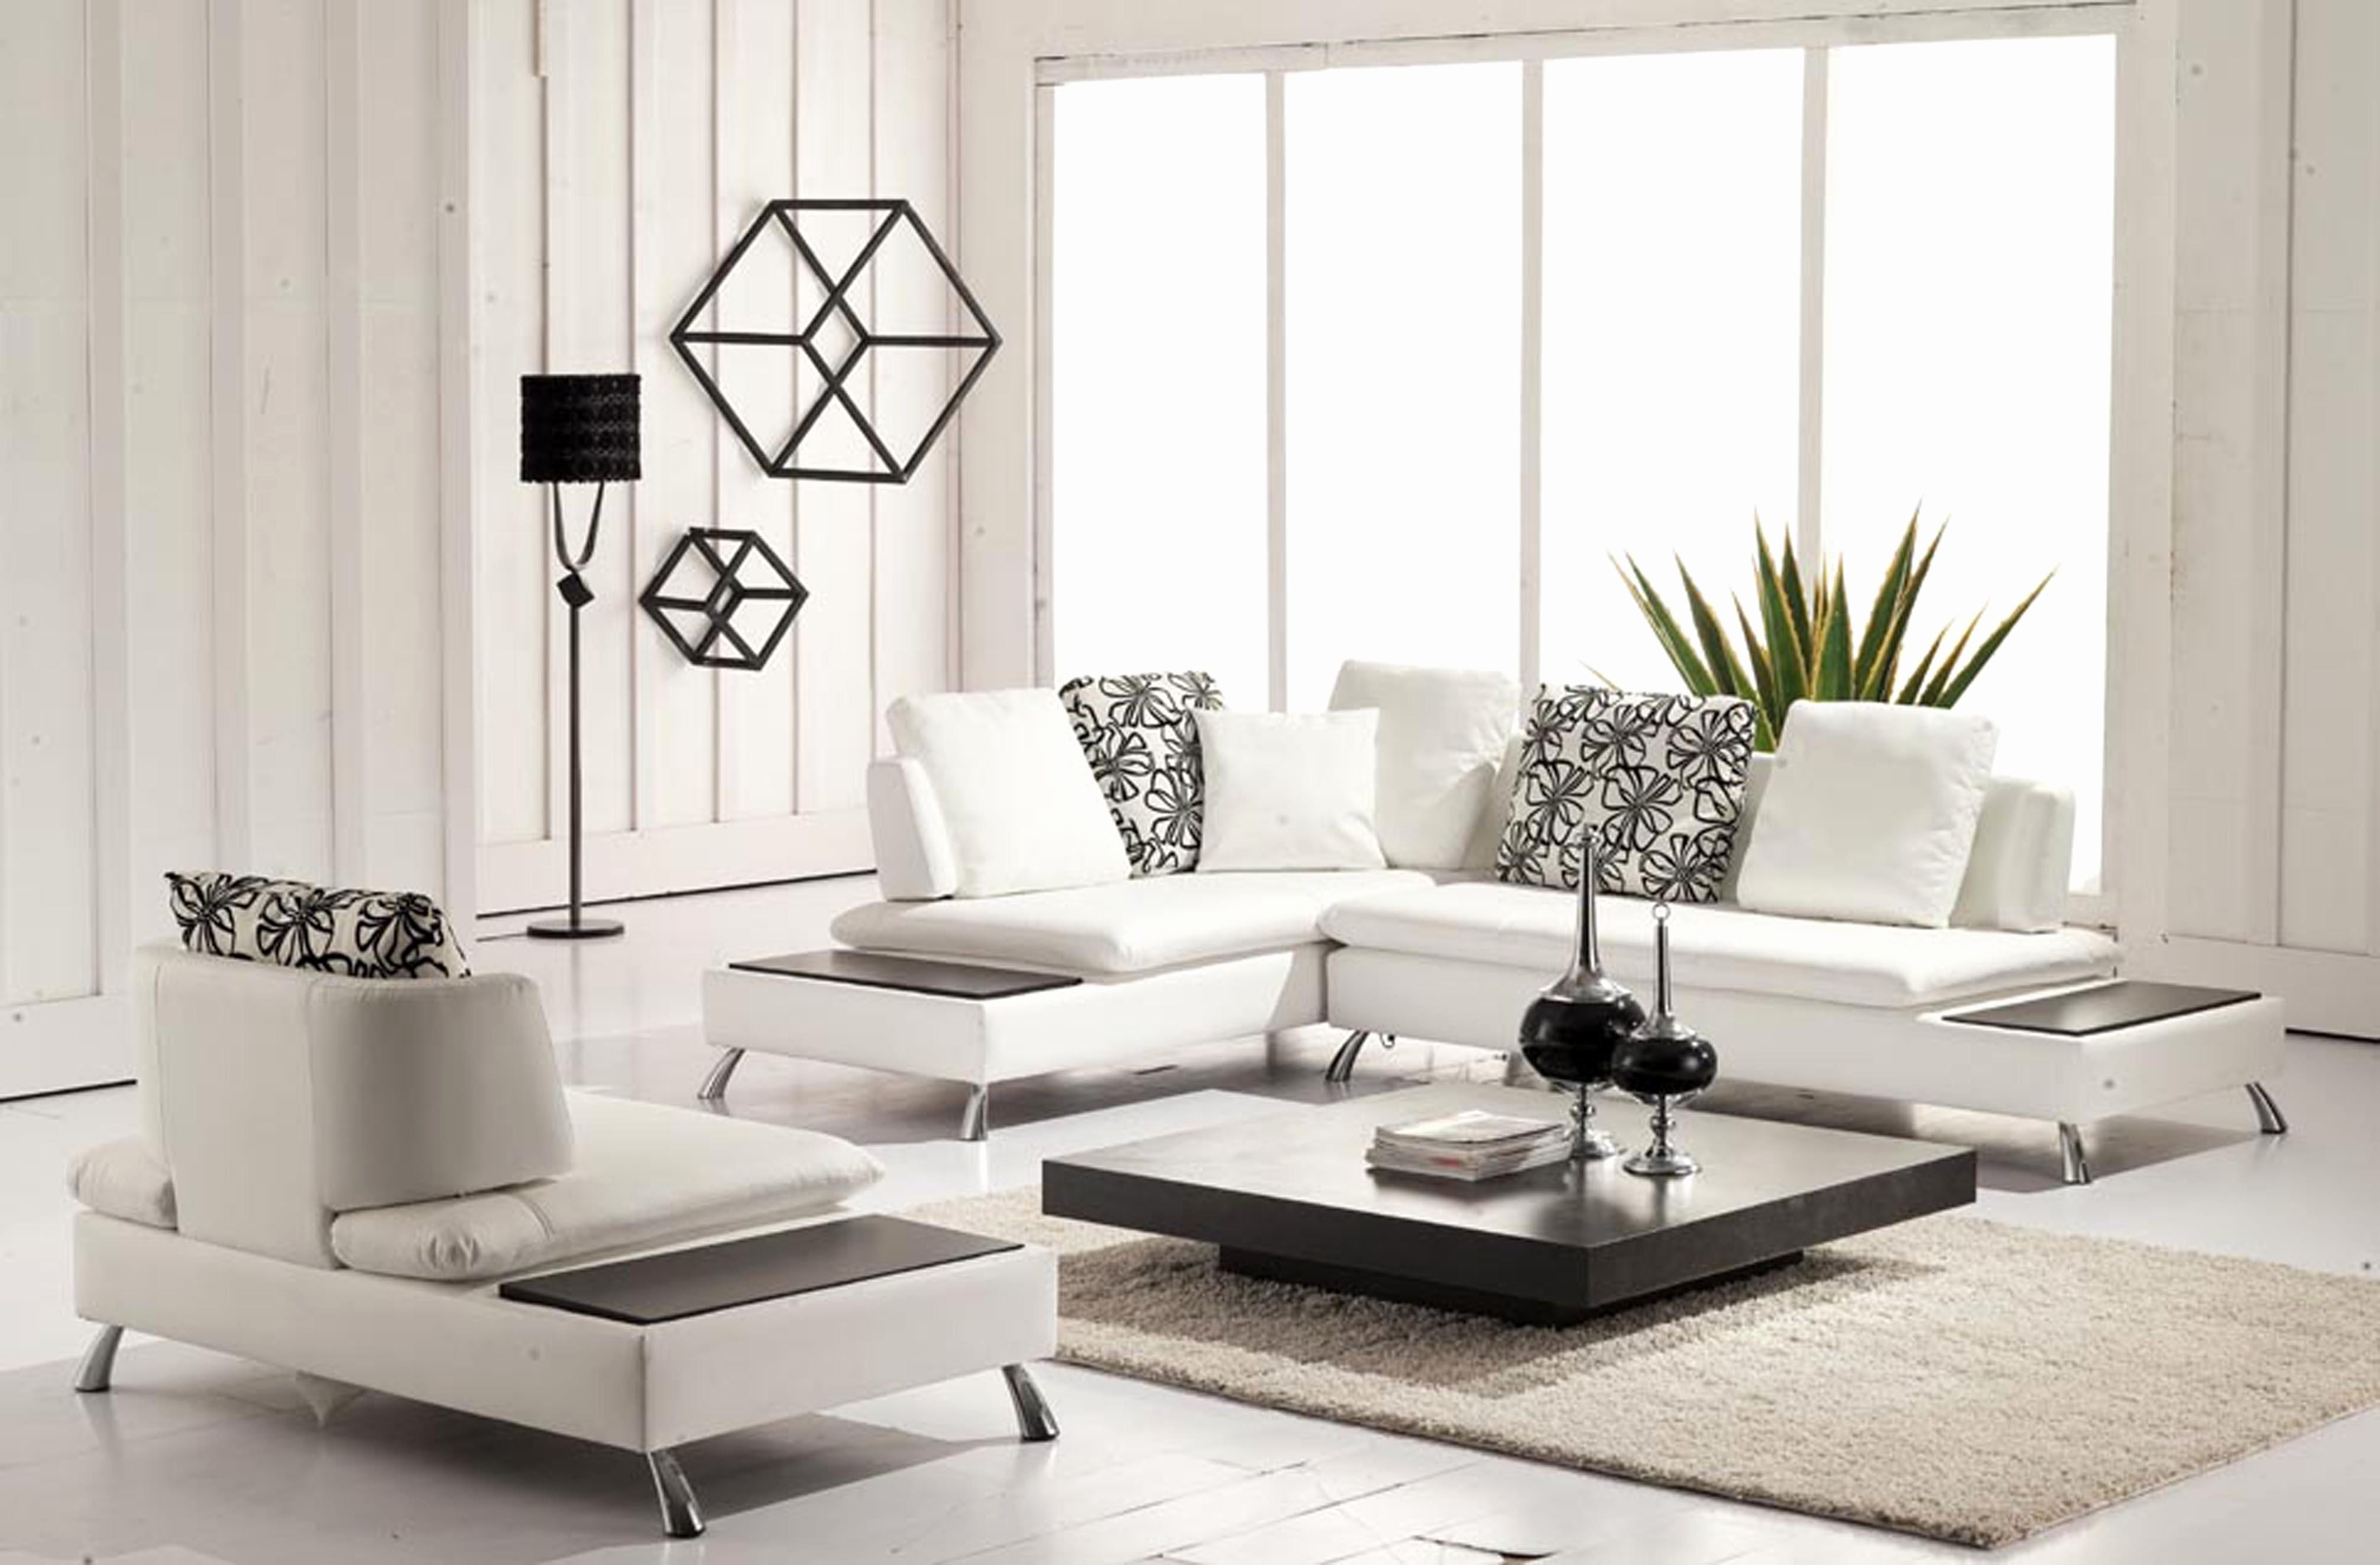 New Contemporary Sofas For Small Spaces Image Contemporary Sofas For Small  Spaces Lovely Inexpensive Leather Sectional